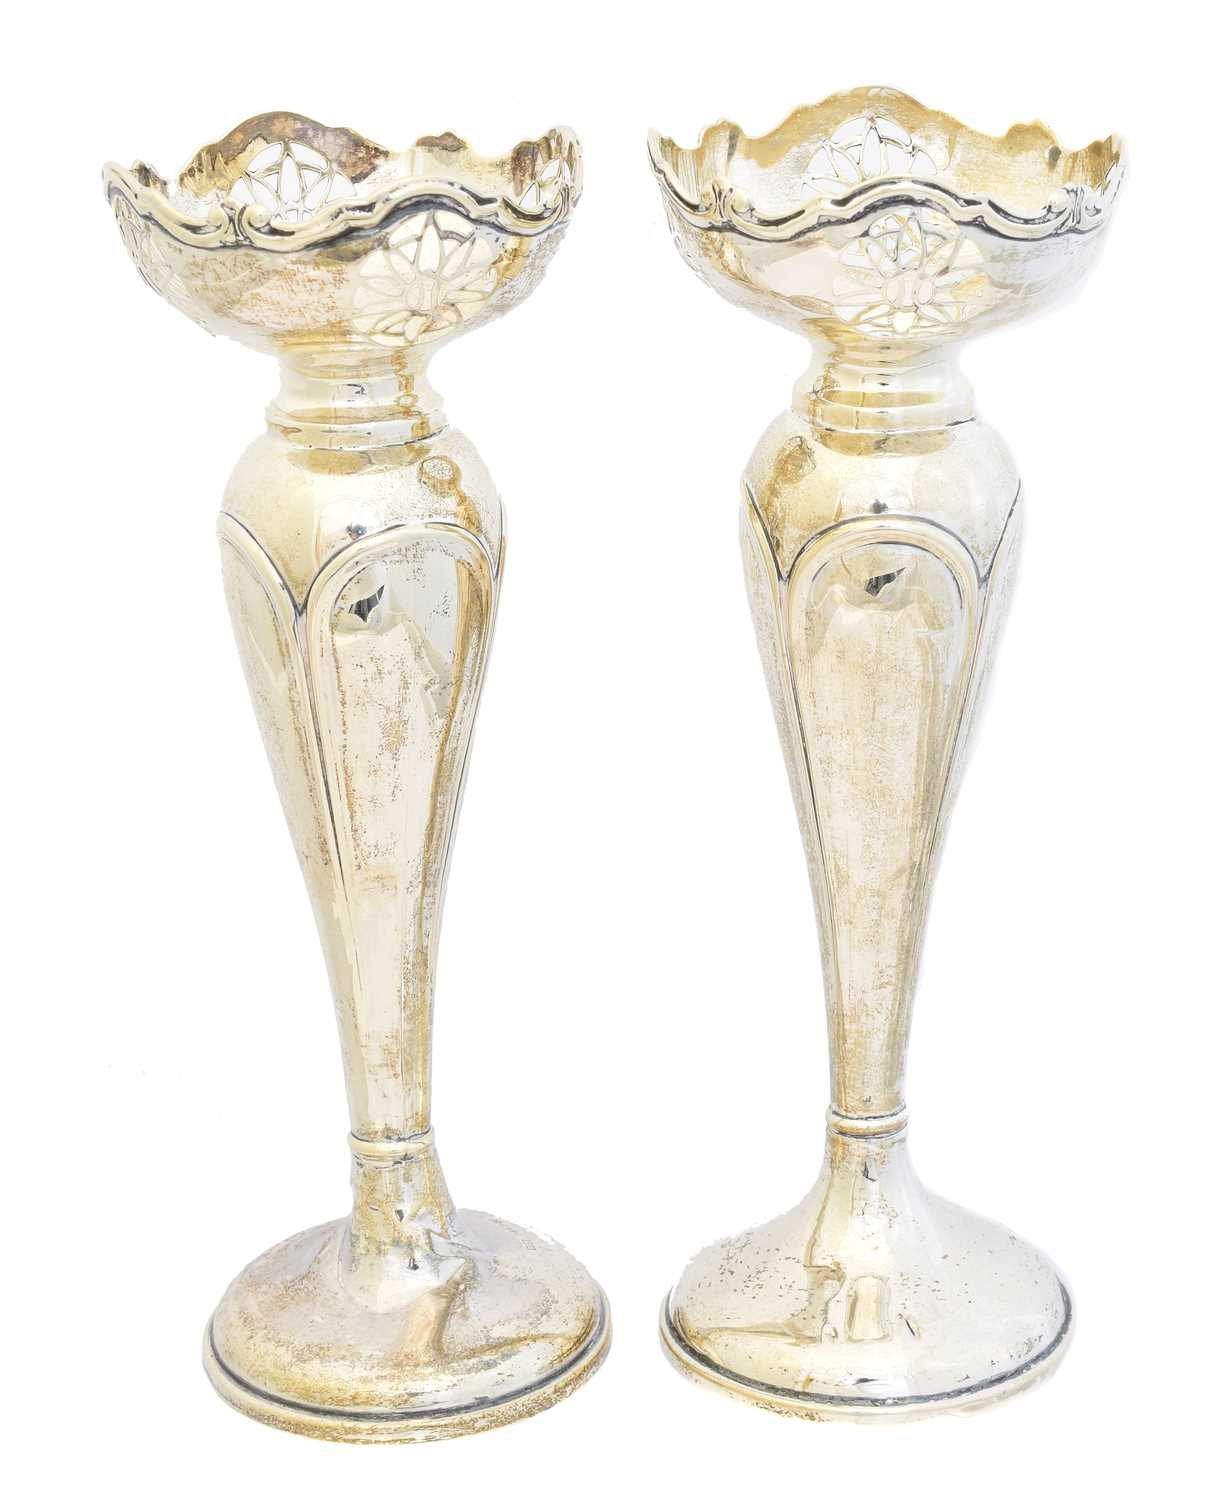 Lot 121 - A pair of George V silver vases